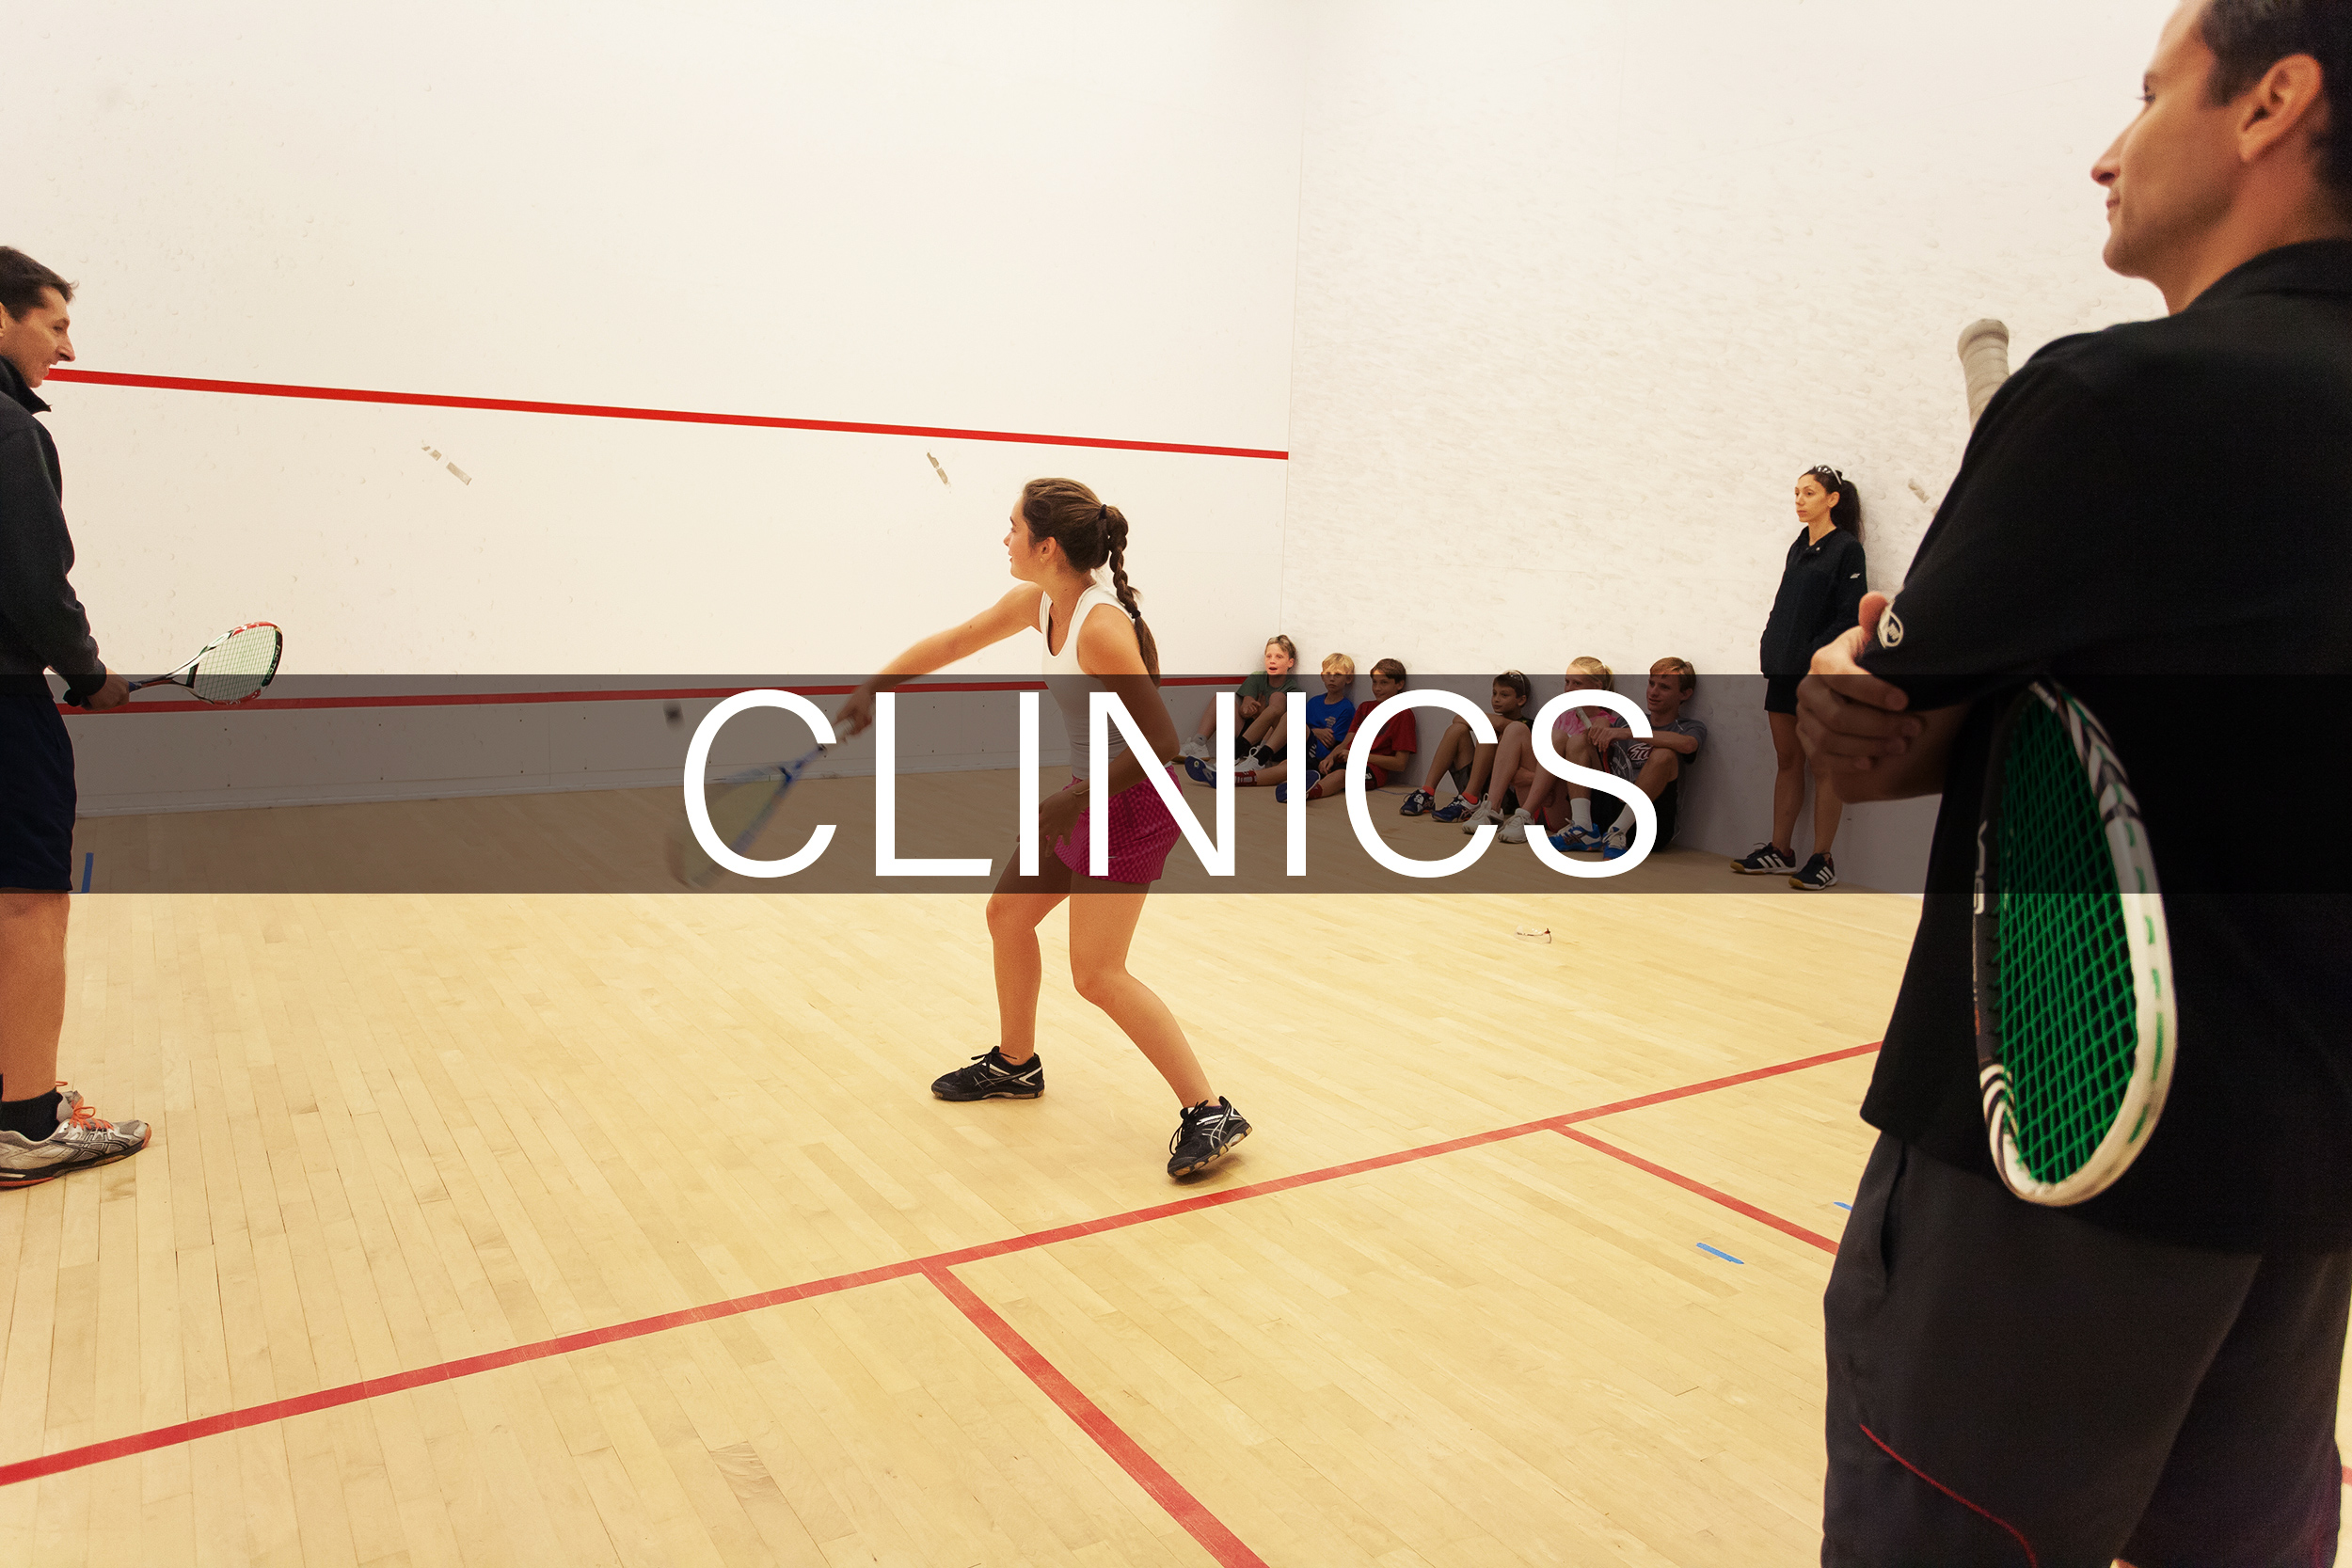 201508SquashCamp-0937p_1mf-2500-CLINICS2ed.jpg